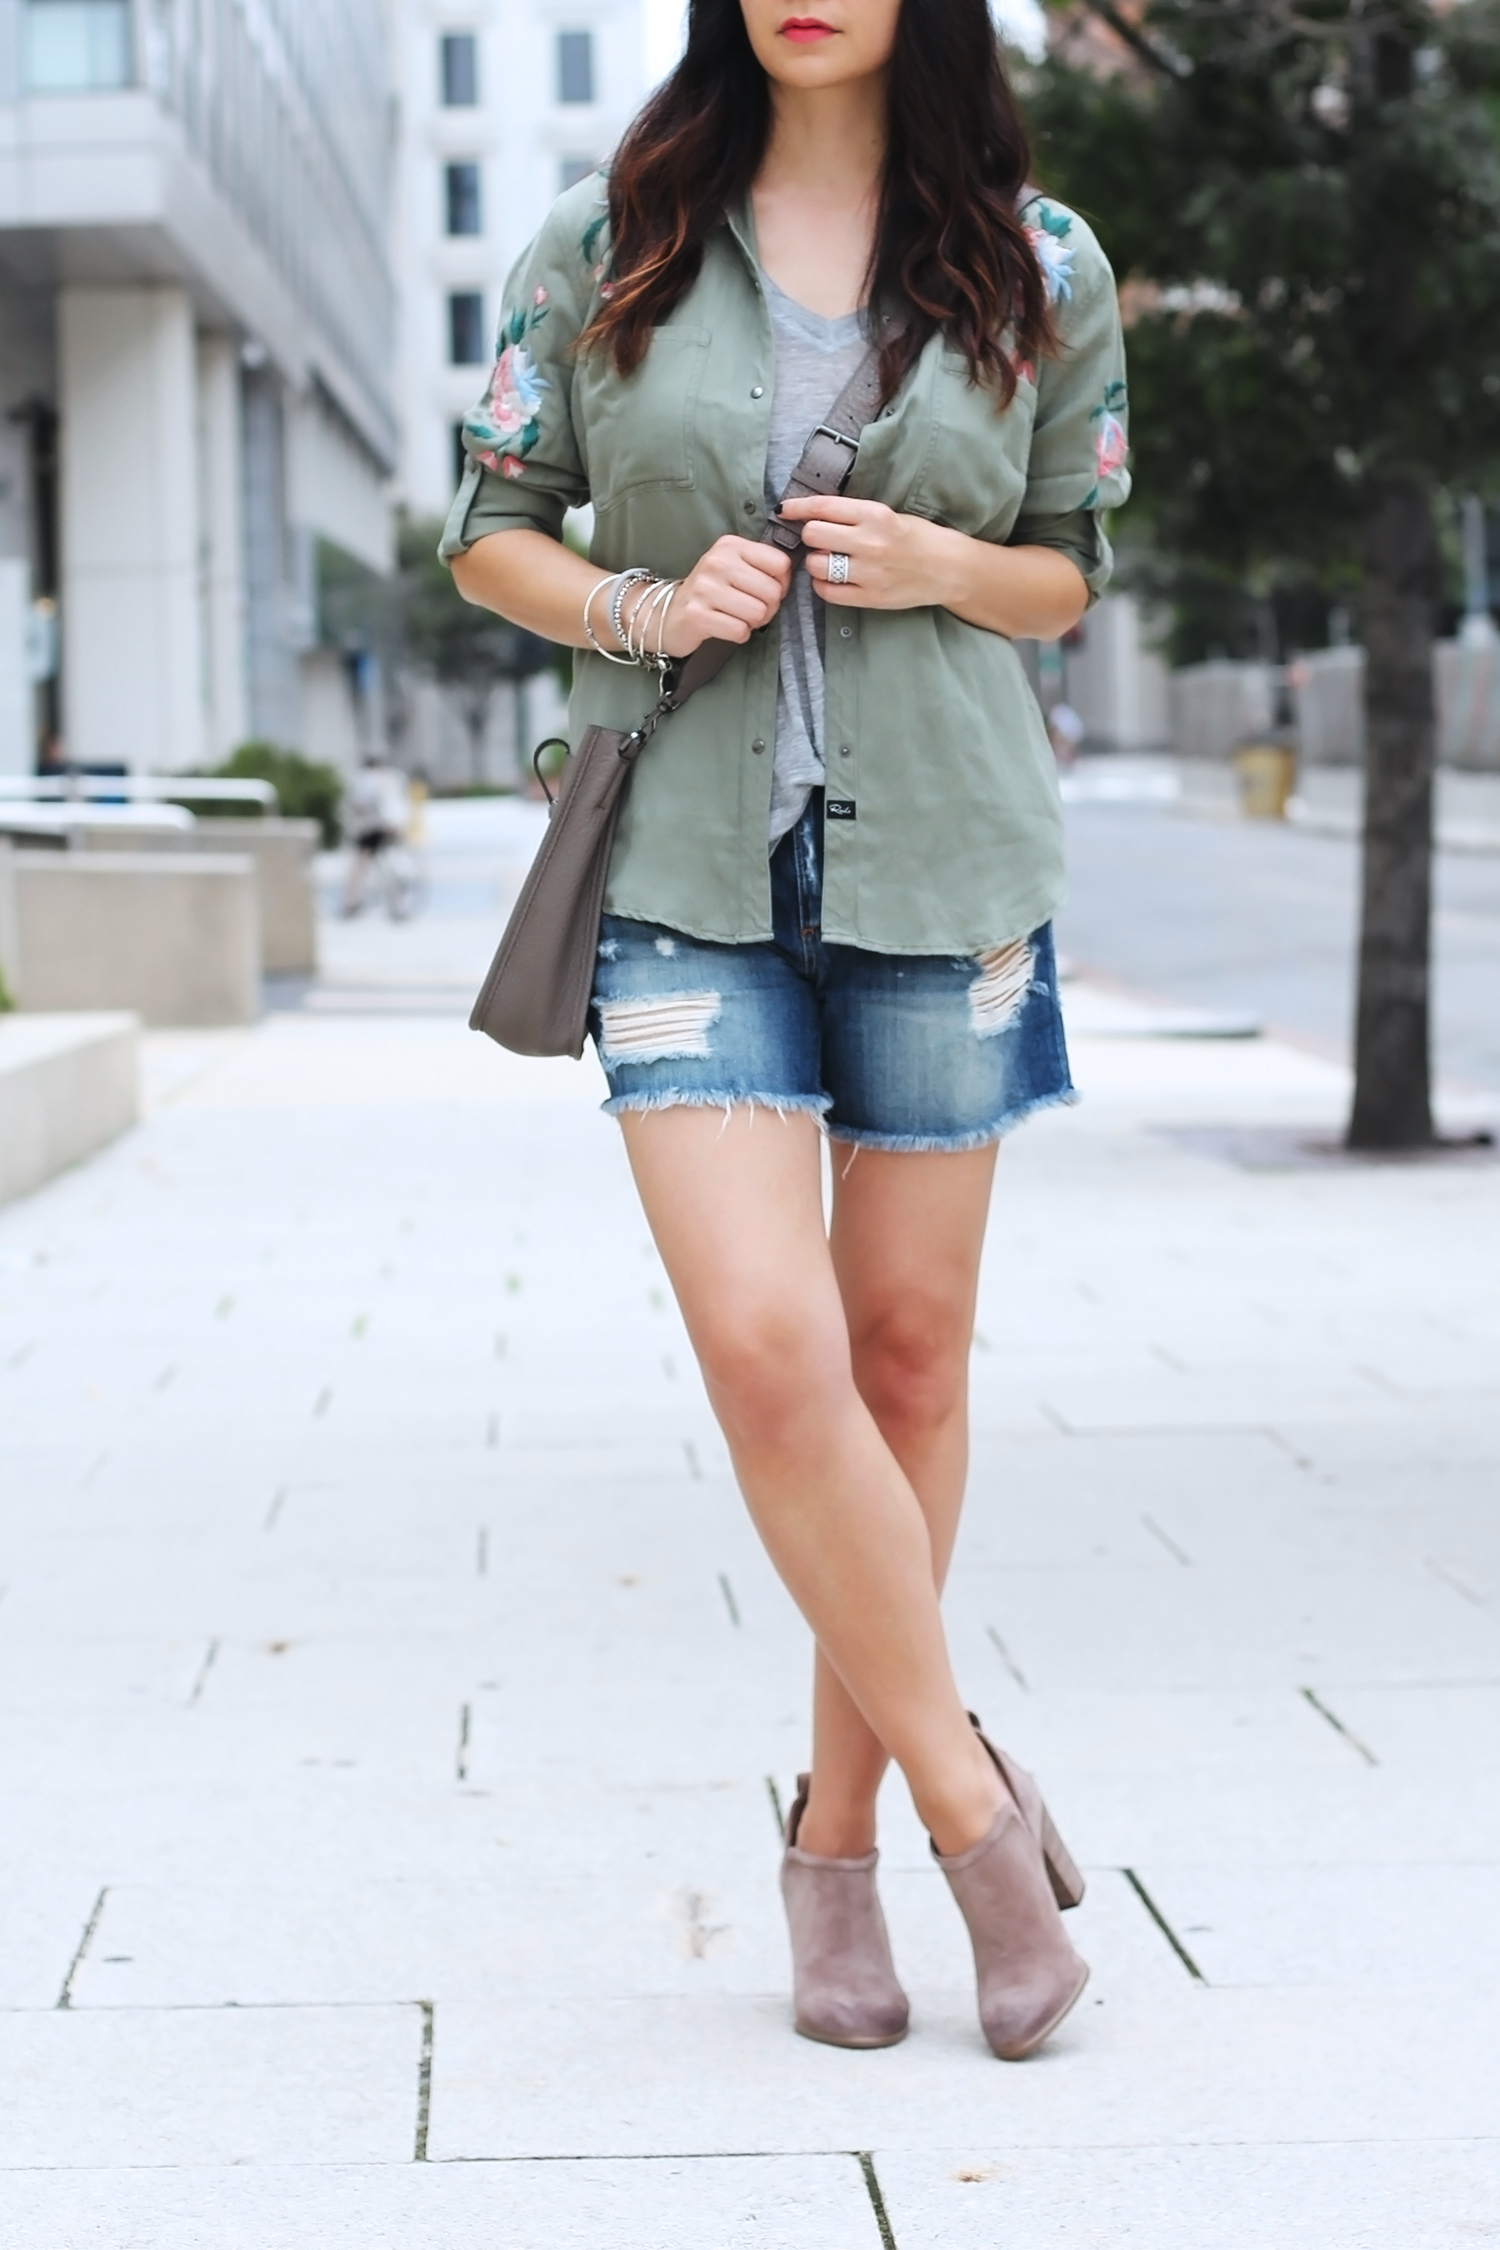 Jean Shorts Outfit for Summer